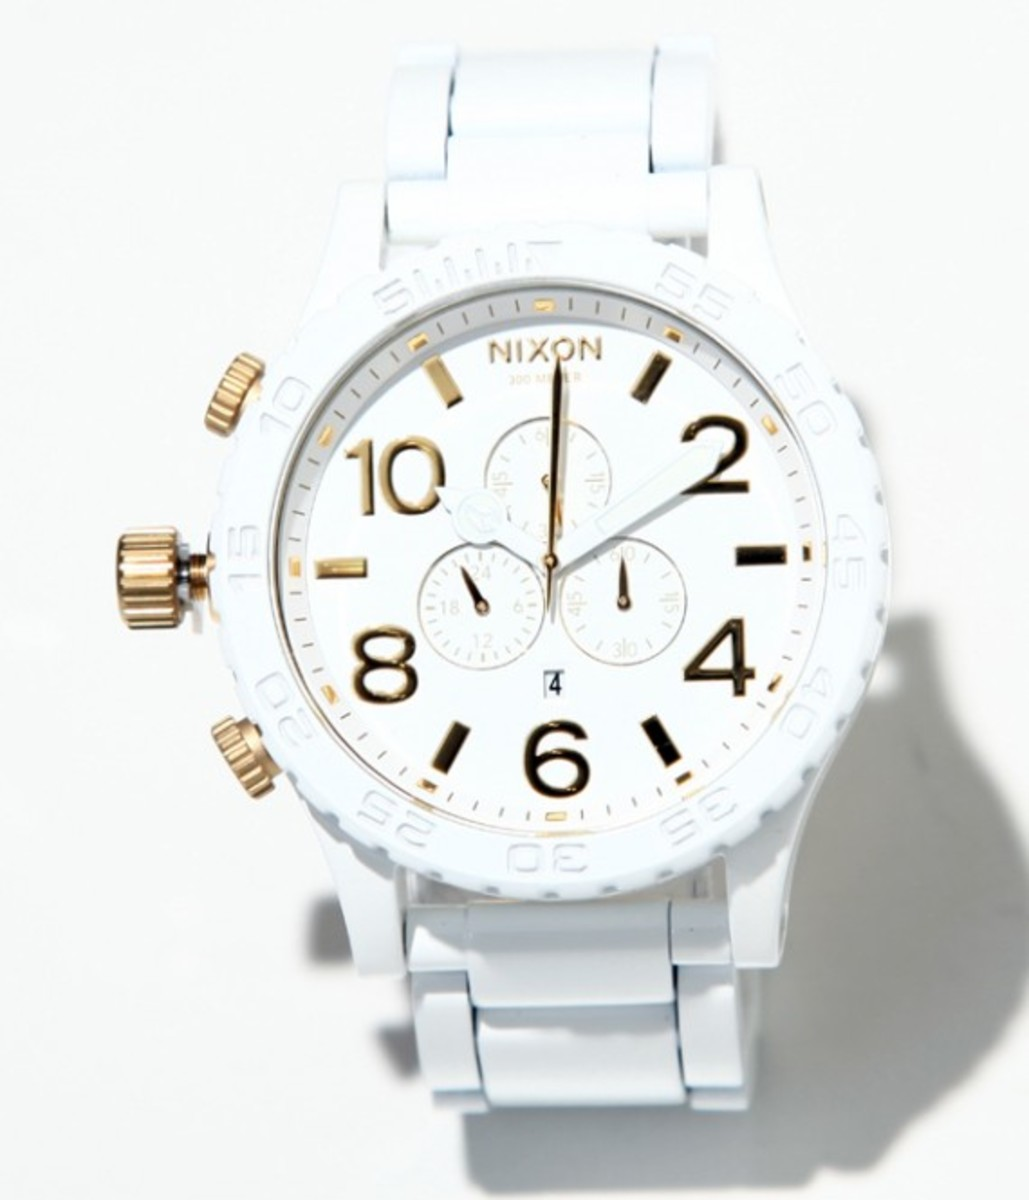 nixon-51-30-chrono-white-gold-02